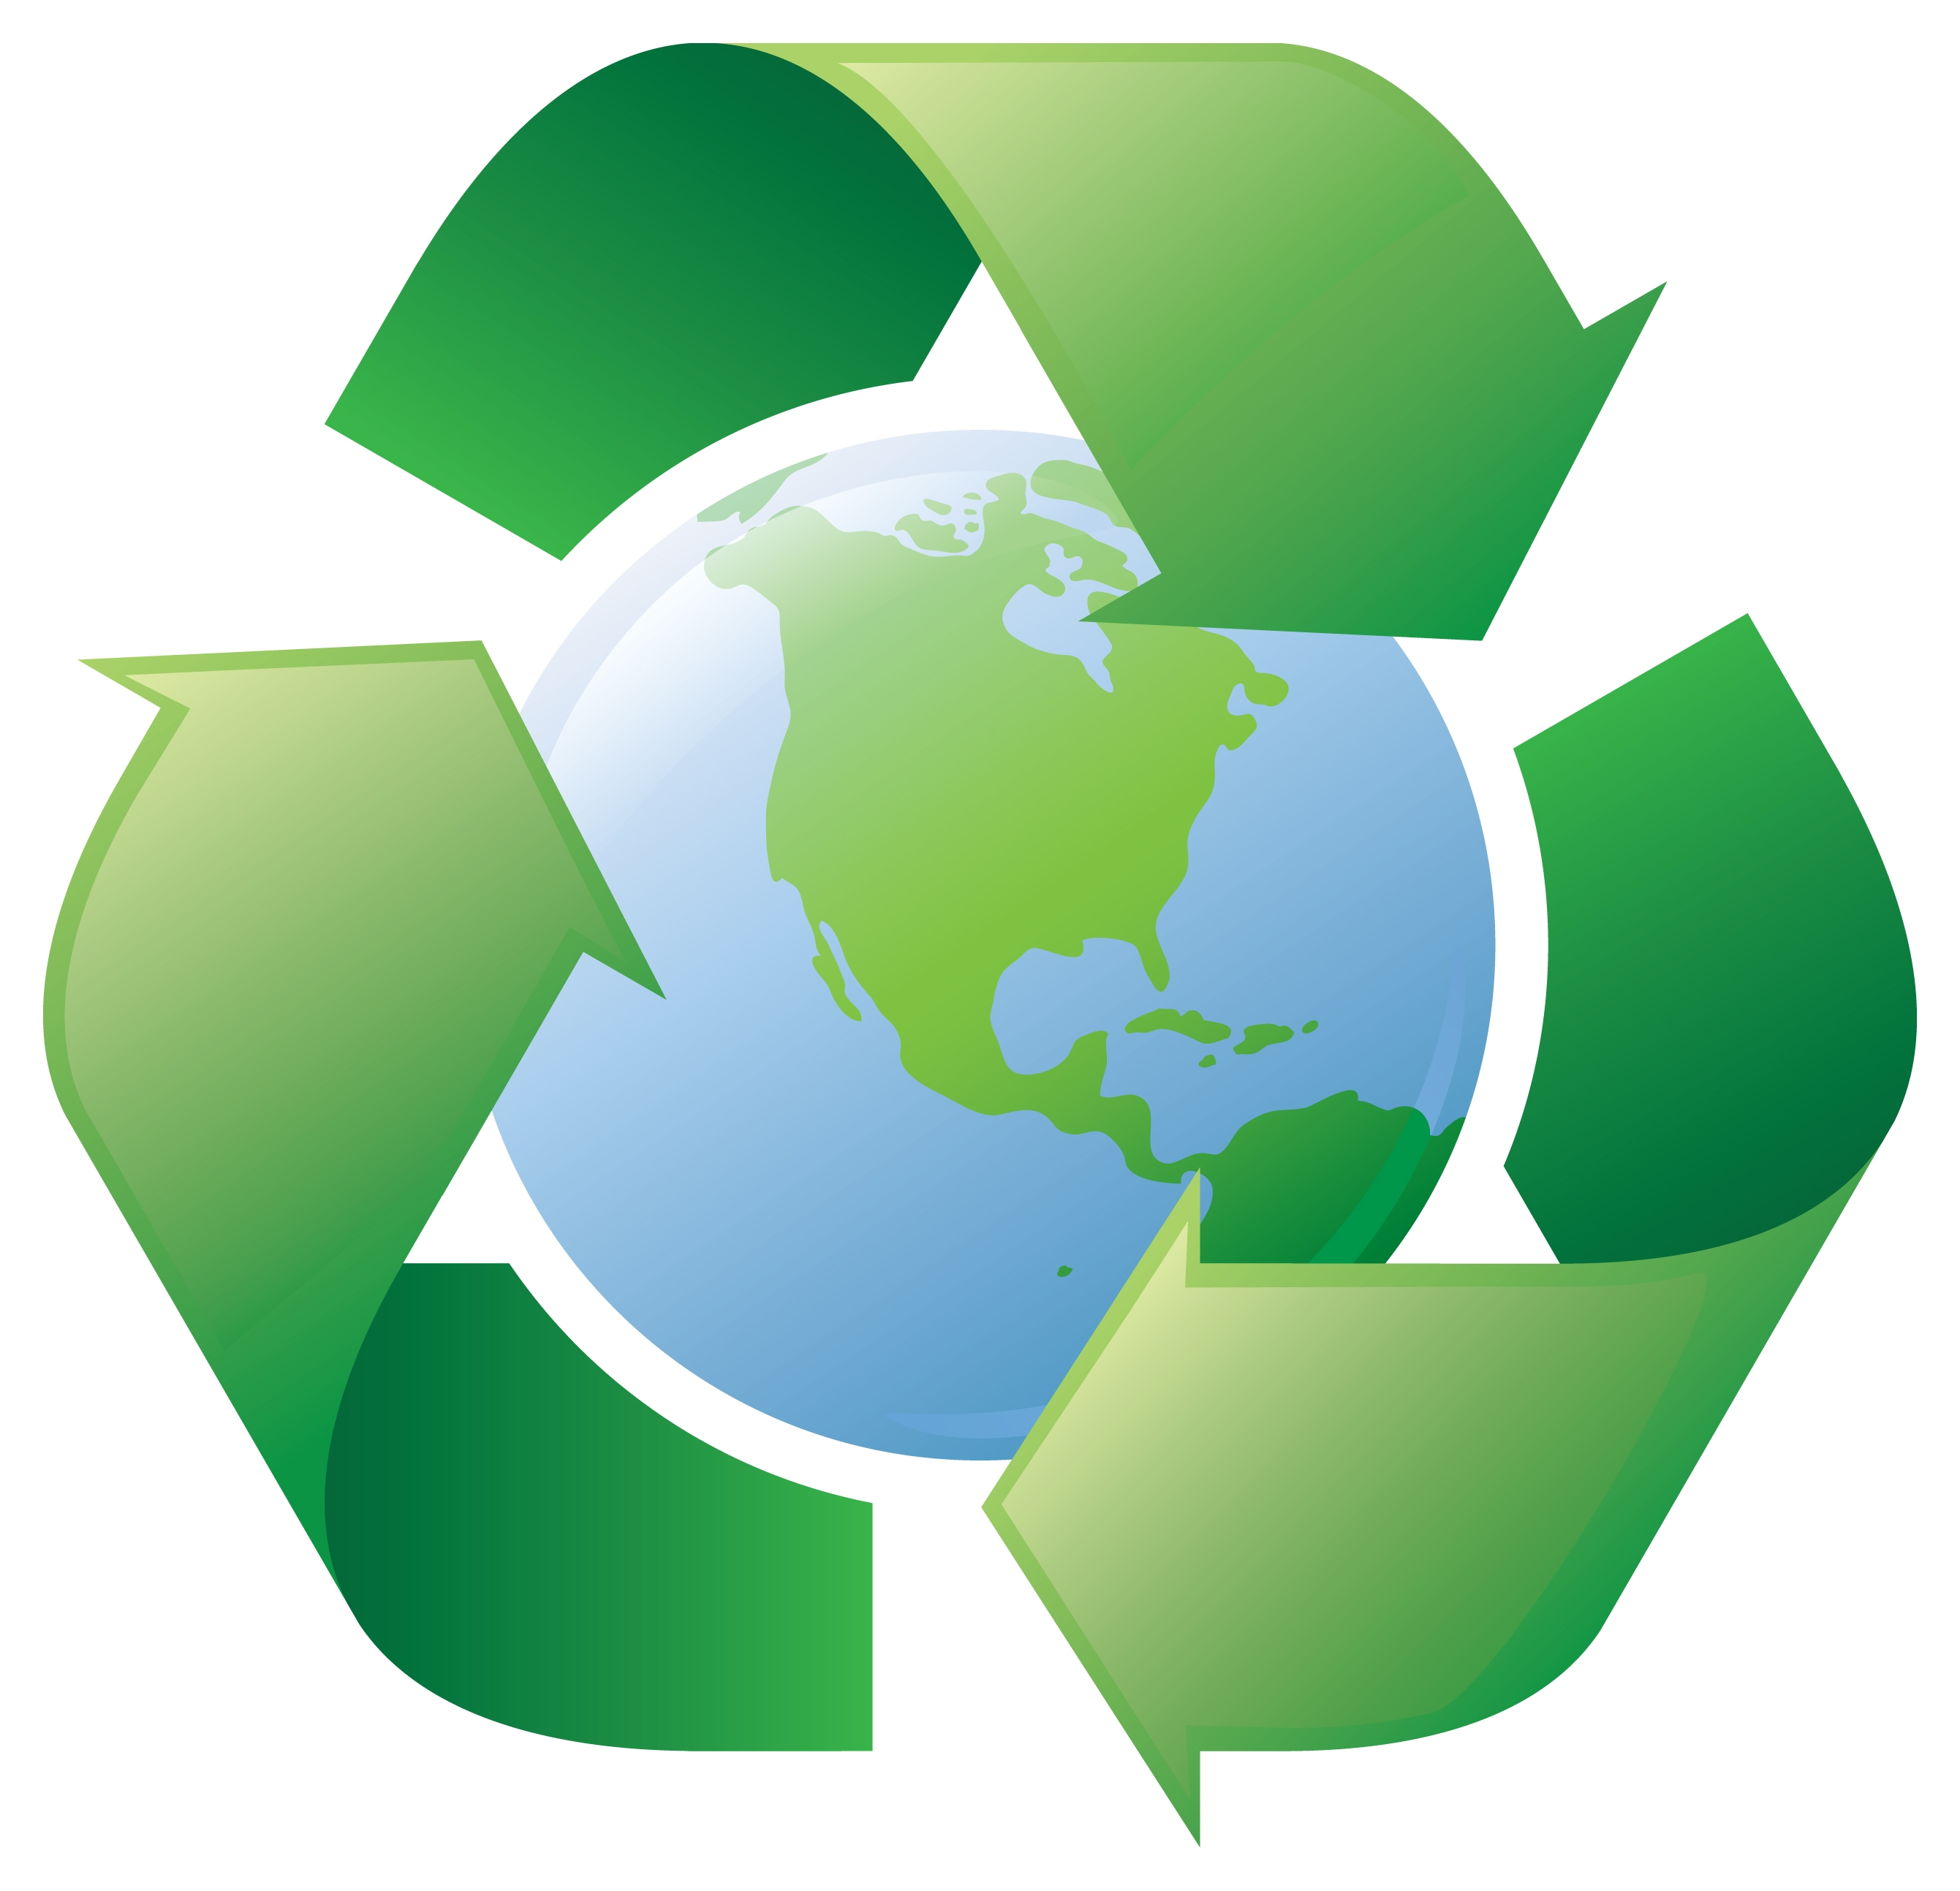 Recycling logos clip art.